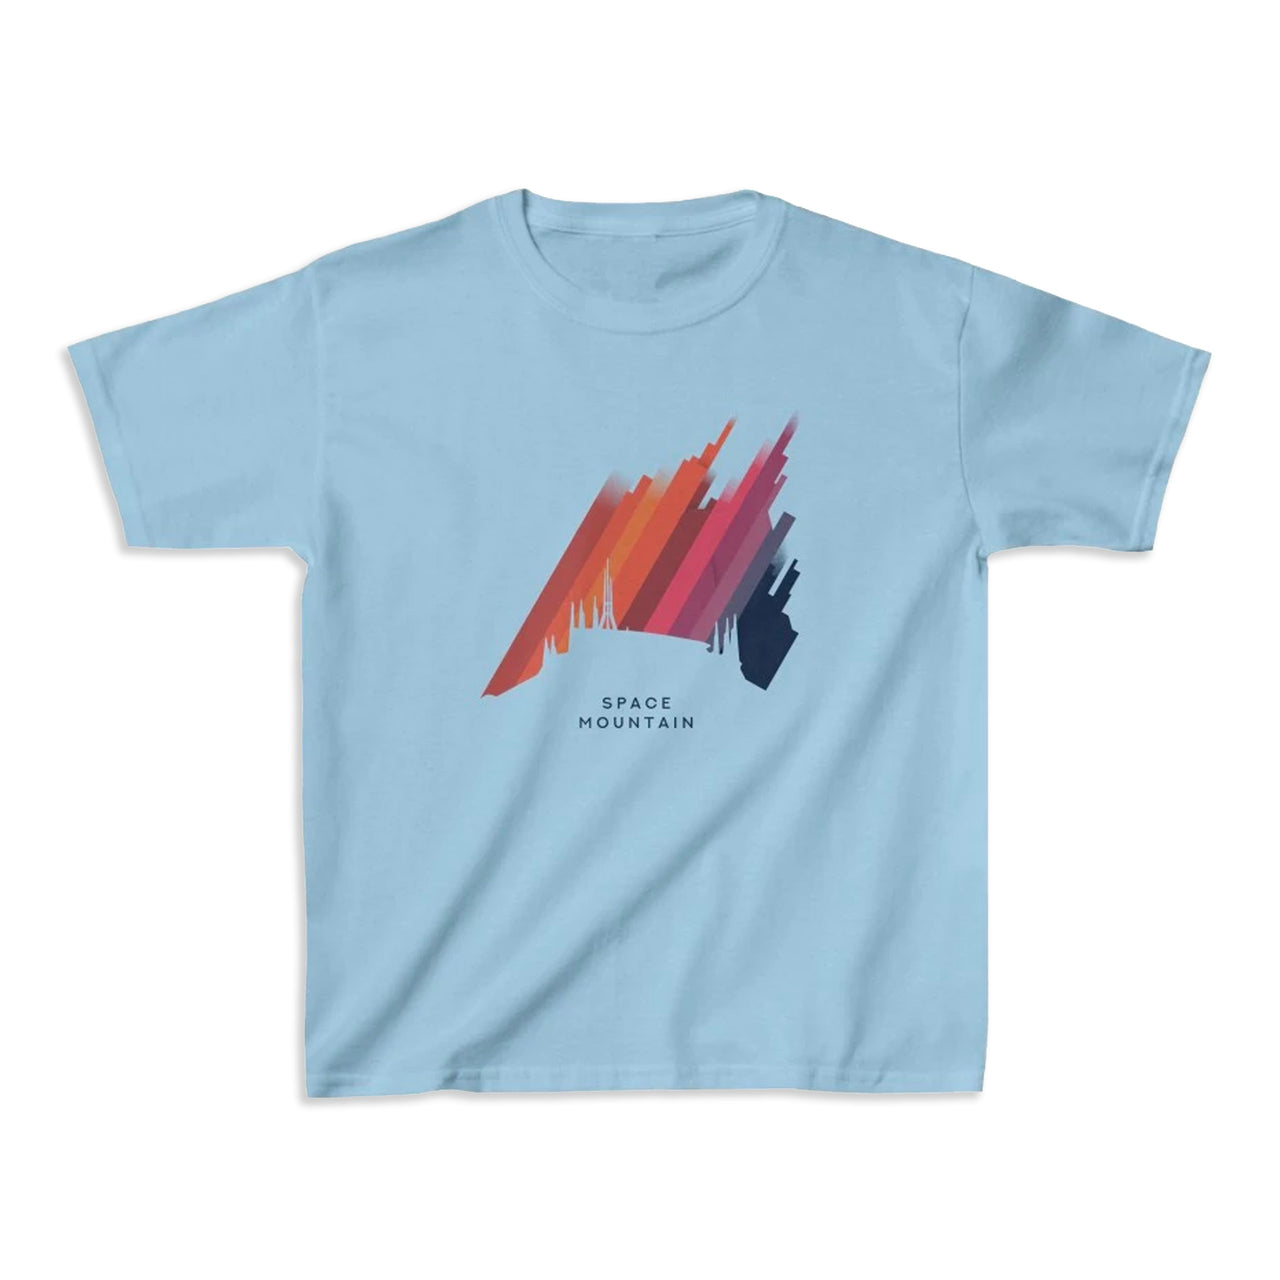 Space Mountain Tee | Youth